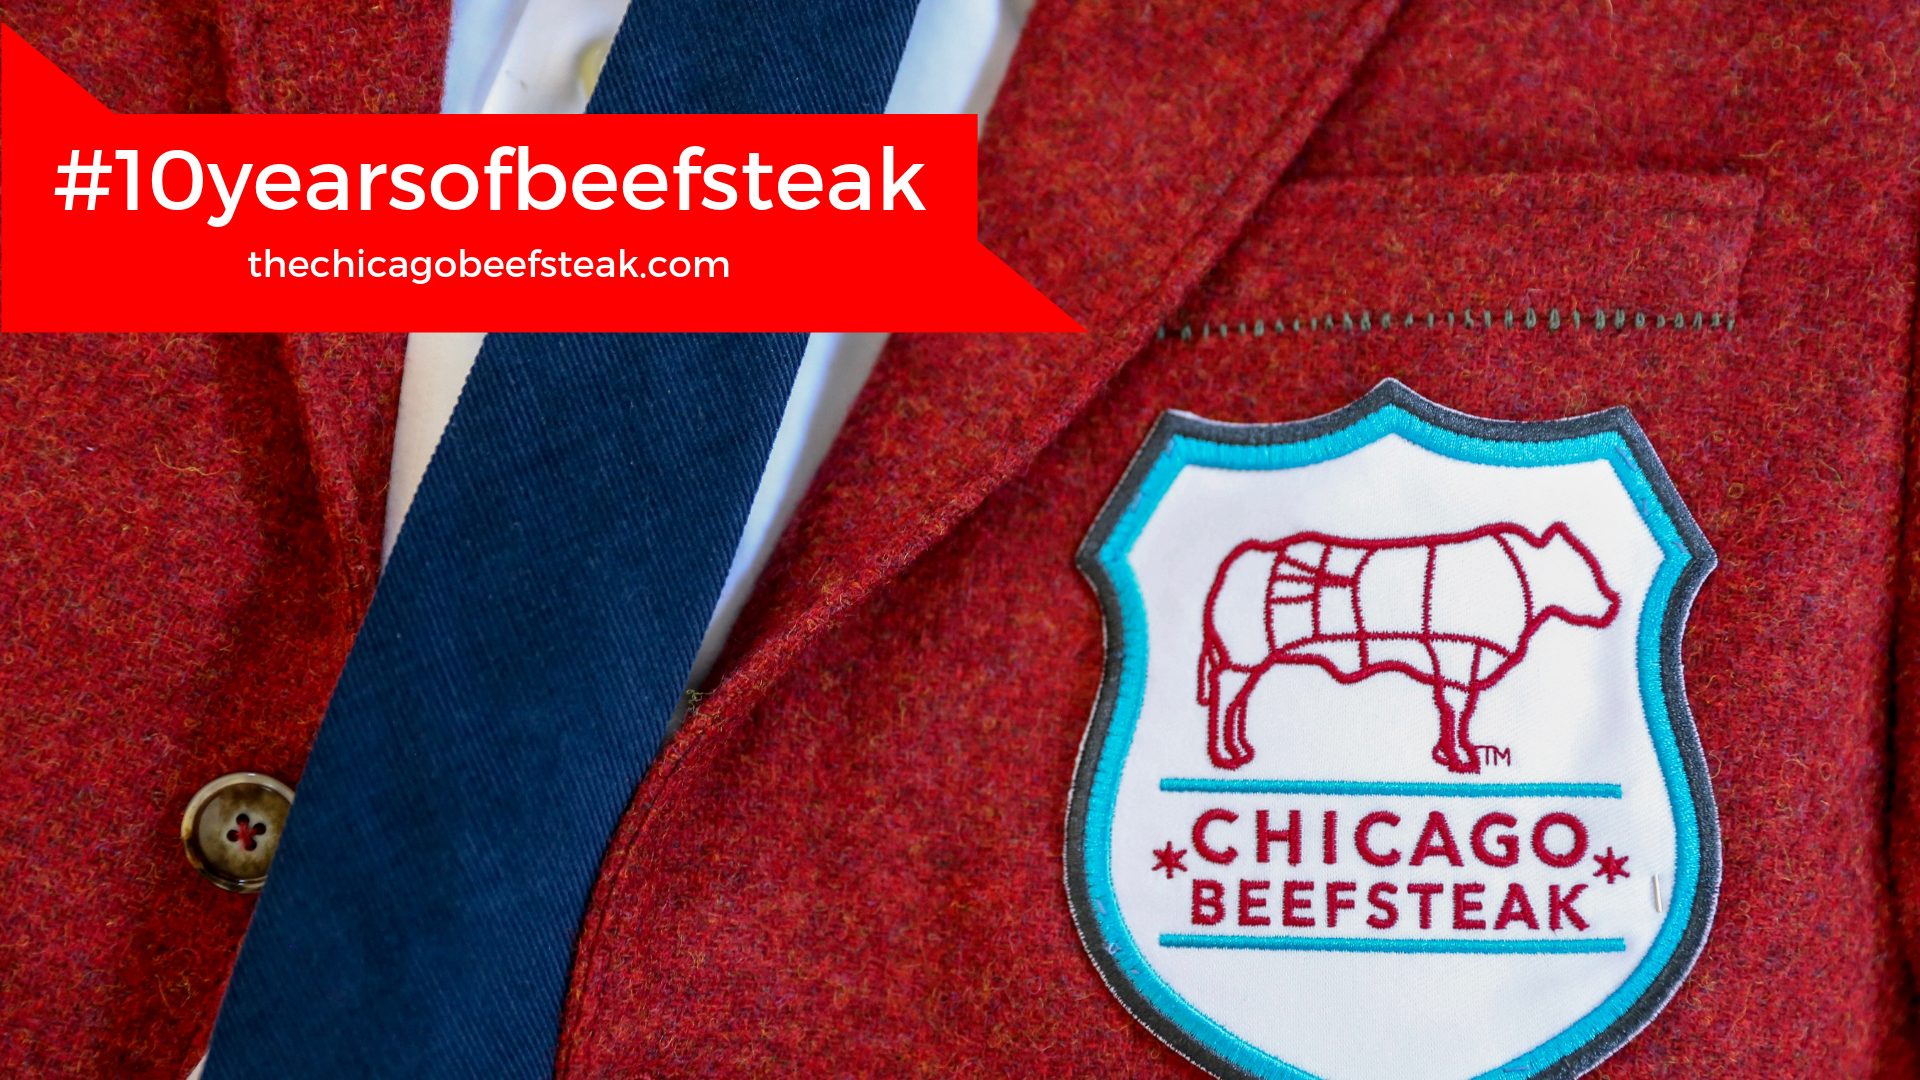 2017  In an honorary sign of appreciation for those who transcend our yearly ritual, in 2017 we introduced The Chicago Beefsteak Hall of Fame for our most distinguished and loyal Beefsteakers. These storied carnivores receive a custom jacked with the coveted Beefsteak insignia.